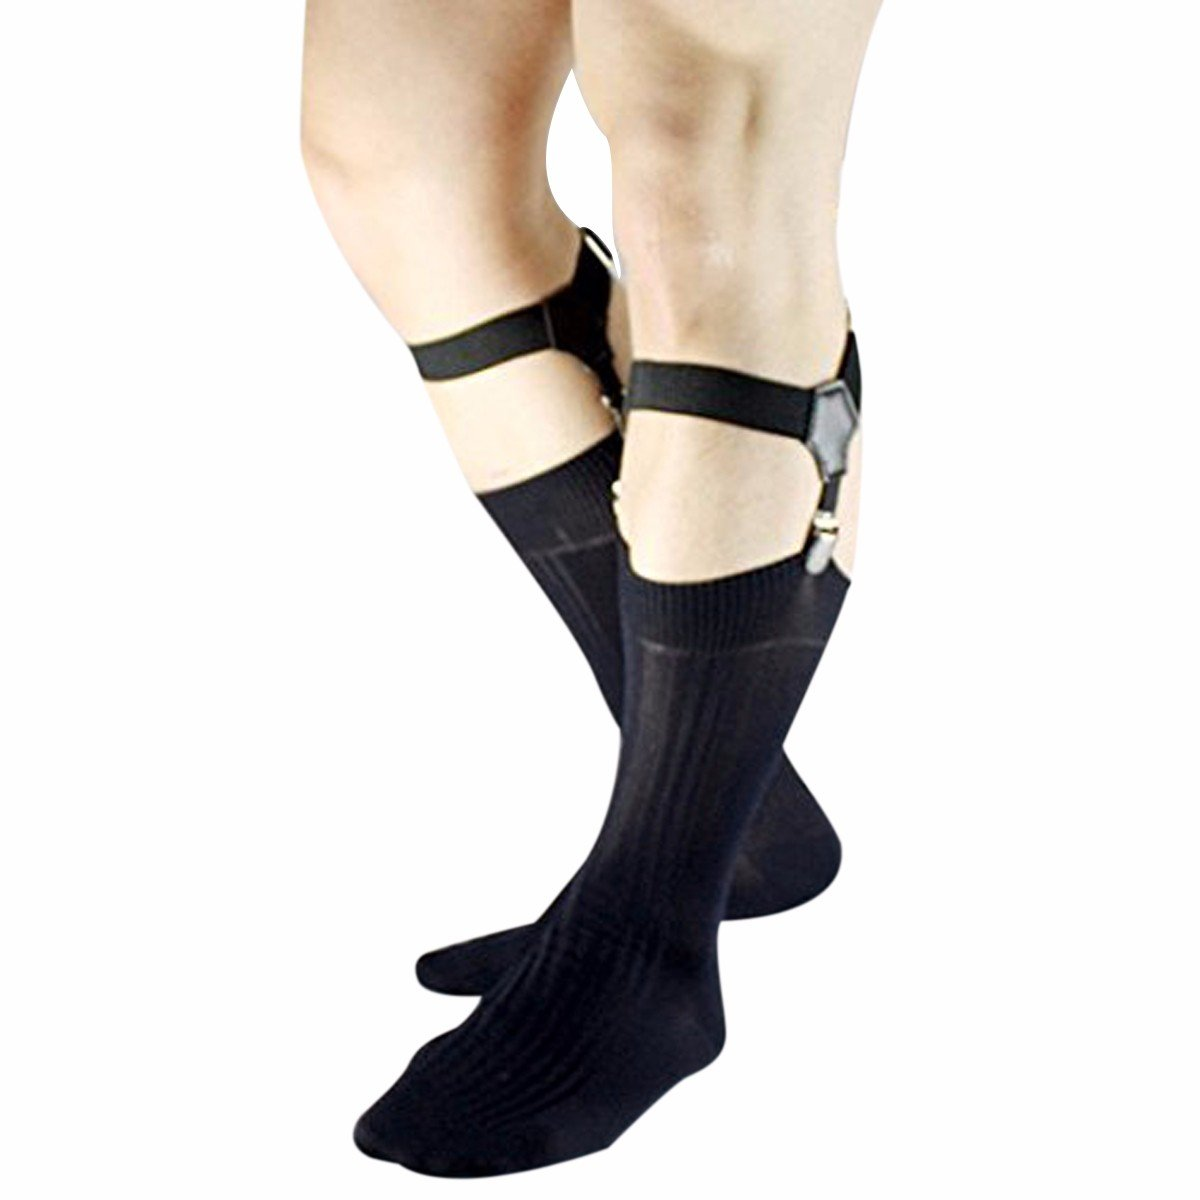 iEFiEL Men's Non-slip Sock Garters Belt Suspender with Double Clips Black One Size